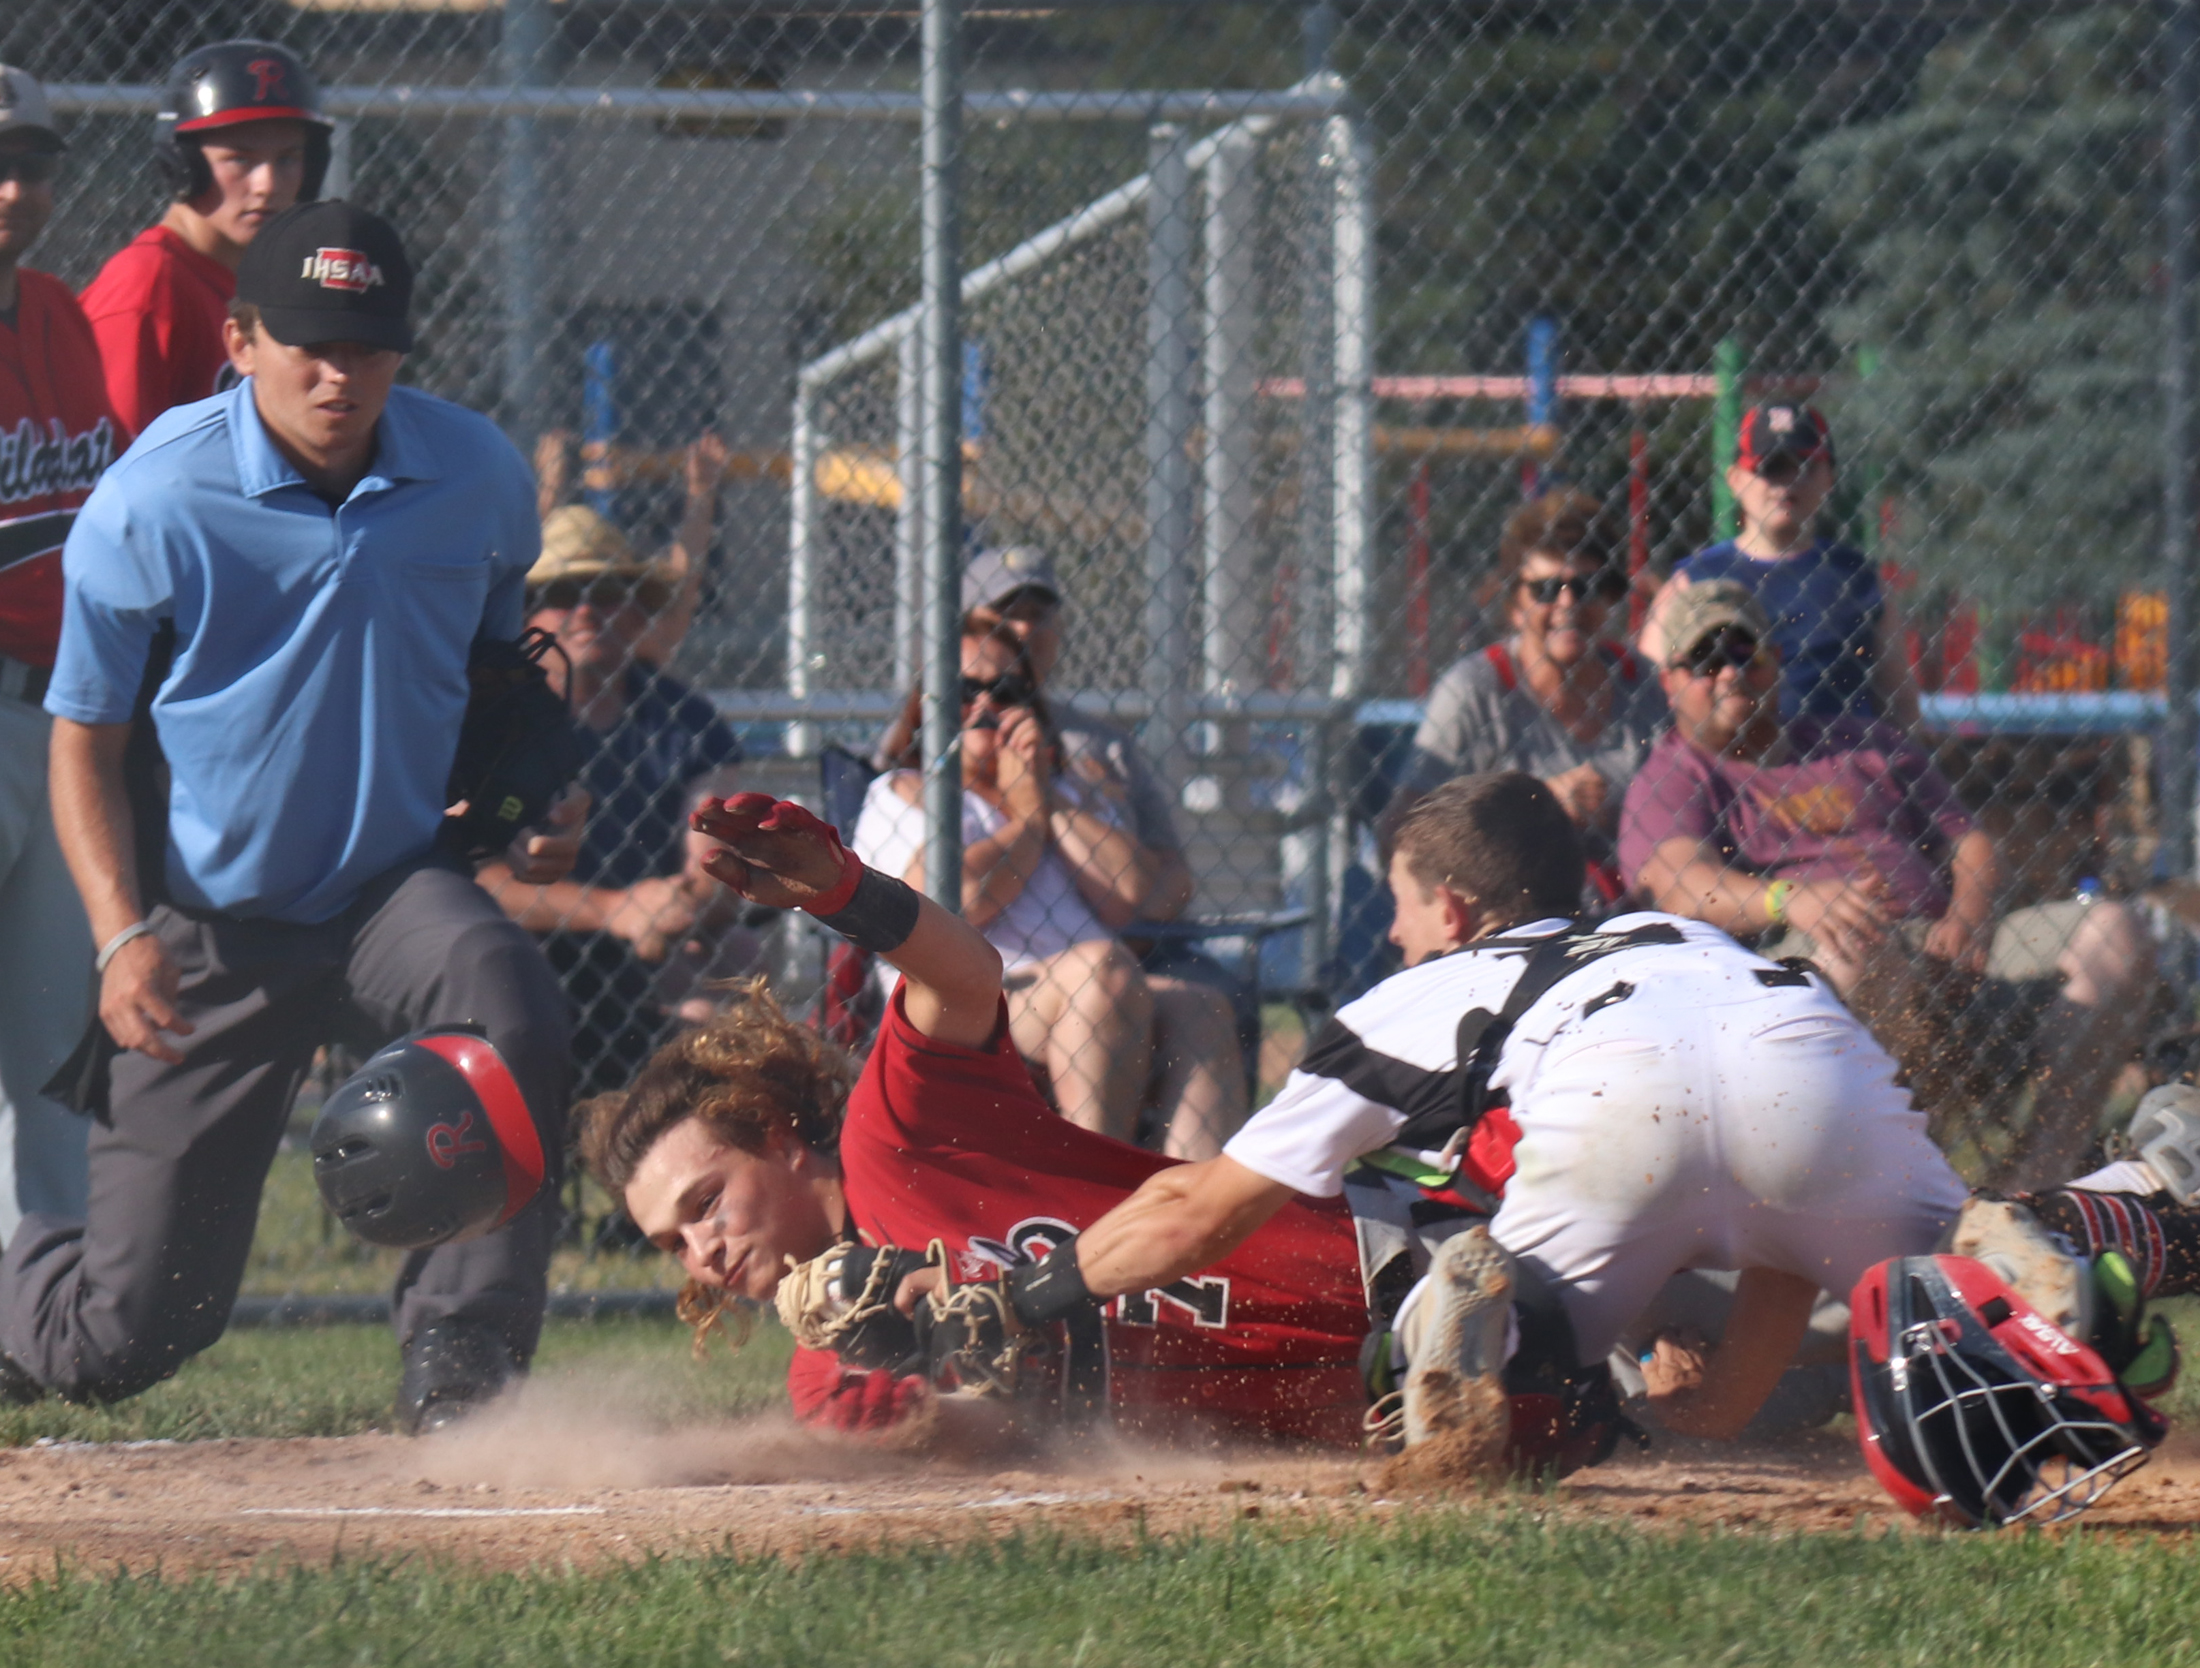 Huskies to face Warriors in Class 1A-District 5 baseball semifinals